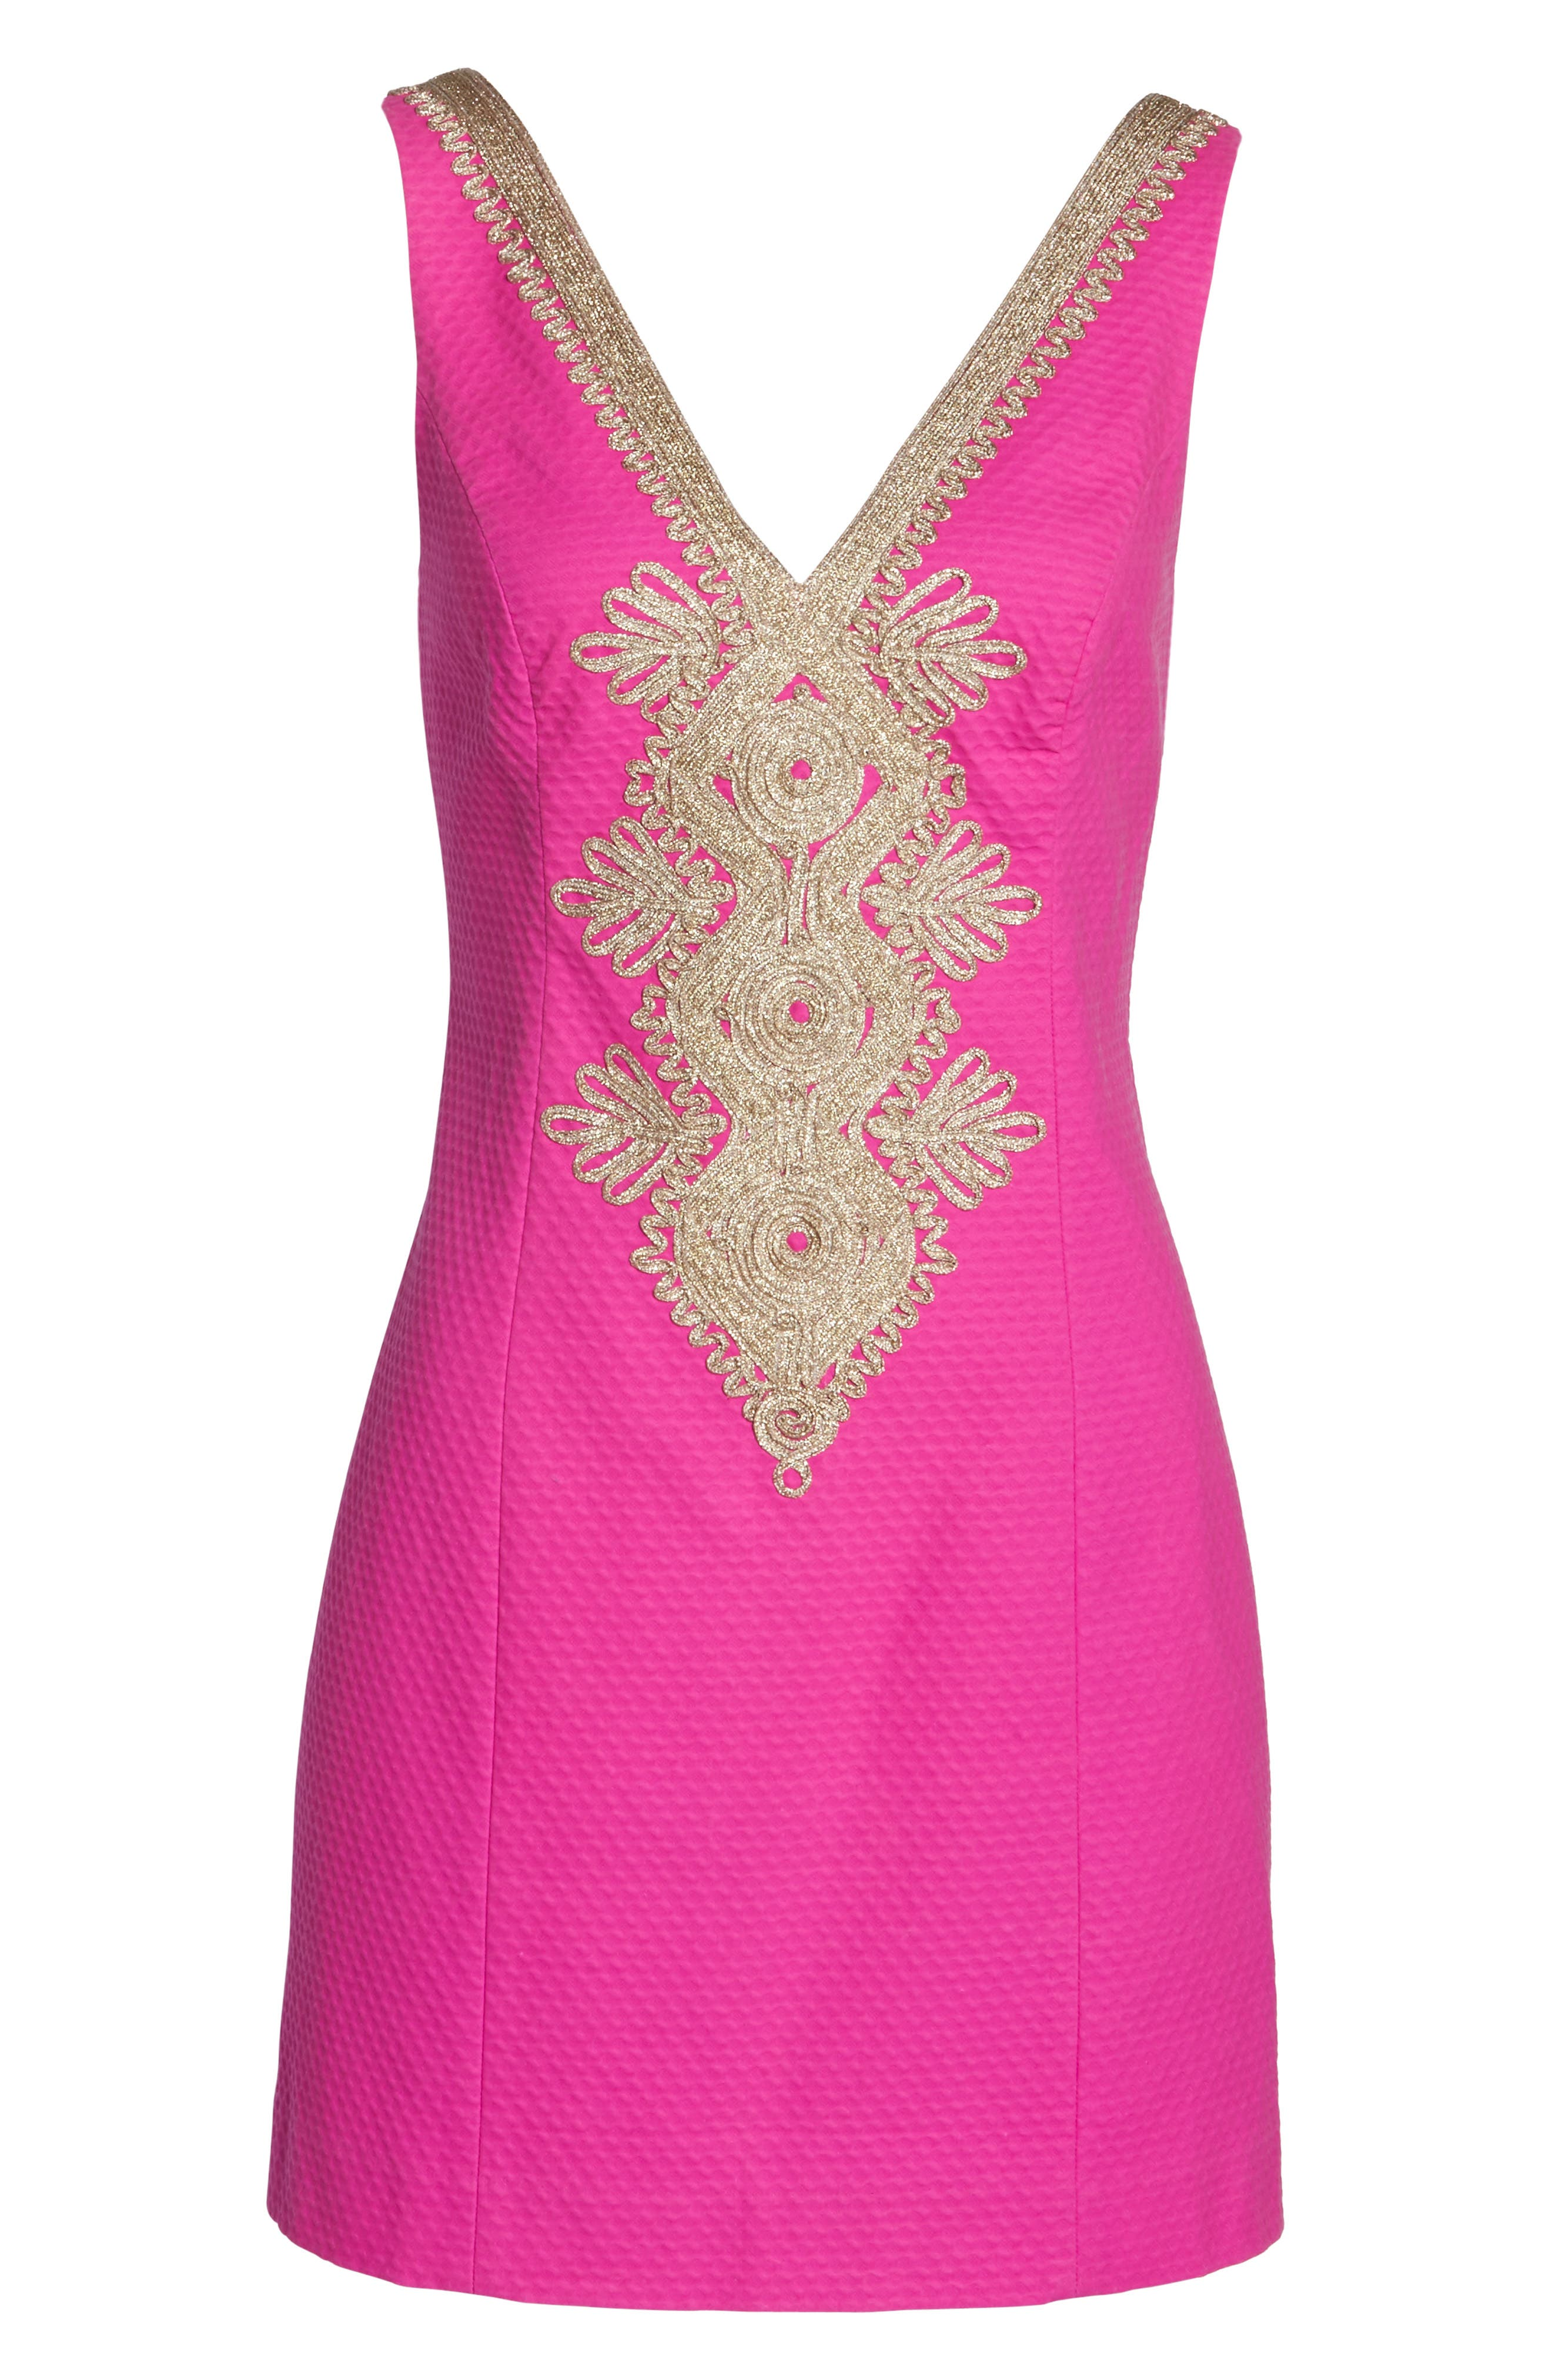 Junie Embroidered Sheath Dress,                             Alternate thumbnail 6, color,                             500